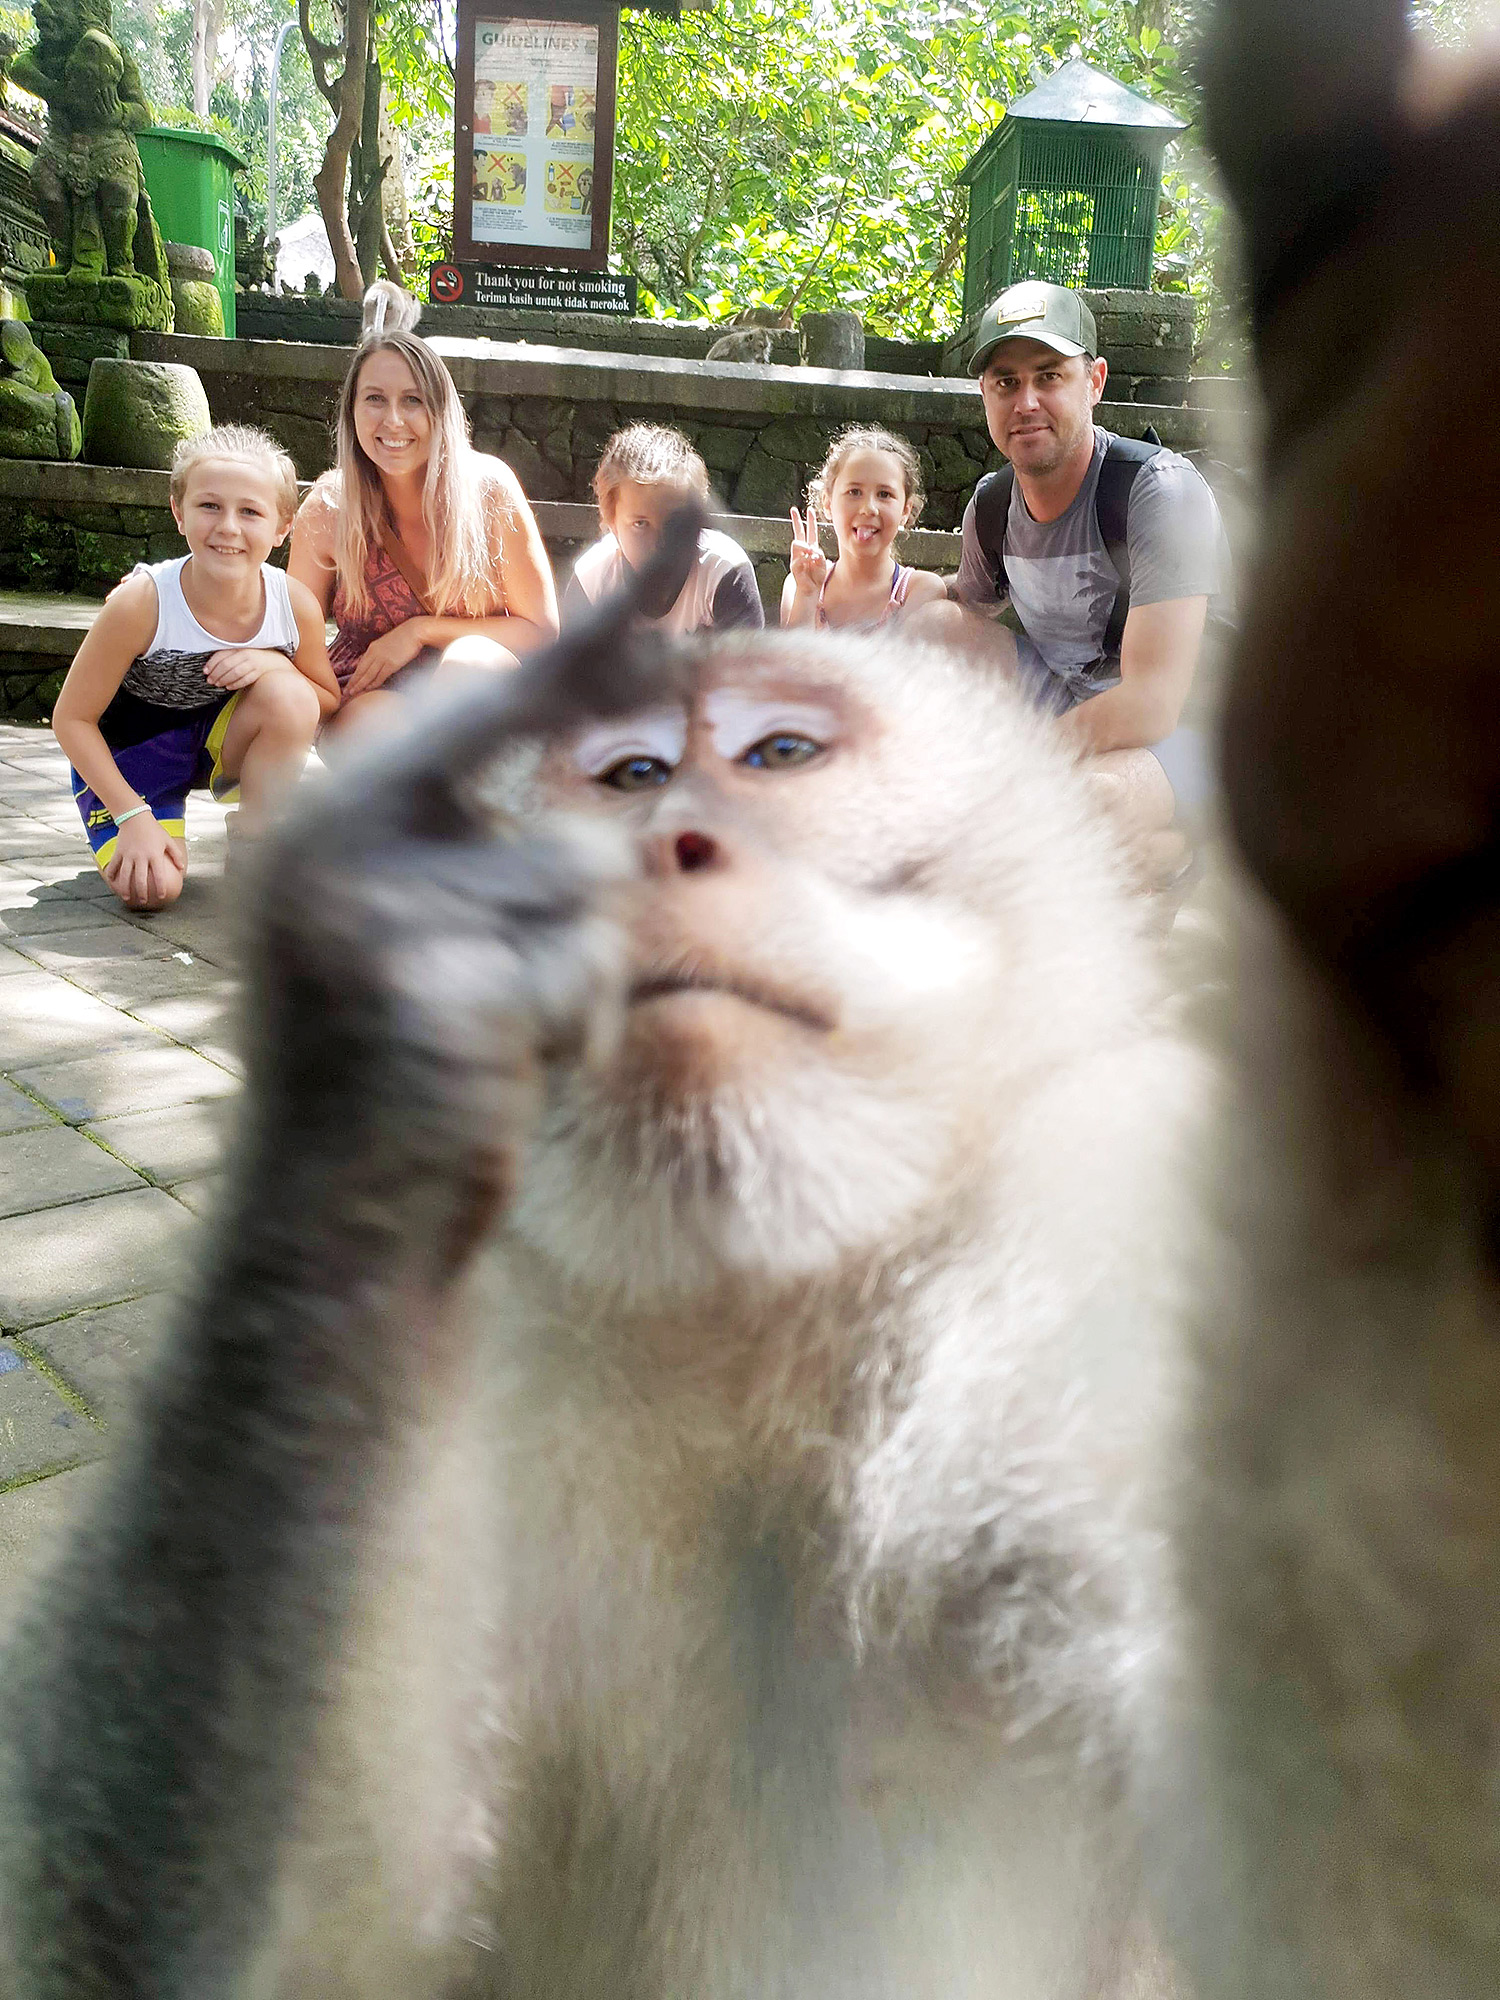 A monkey sticking its middle finger up, photobombing a family photo in Bali, Indonesia